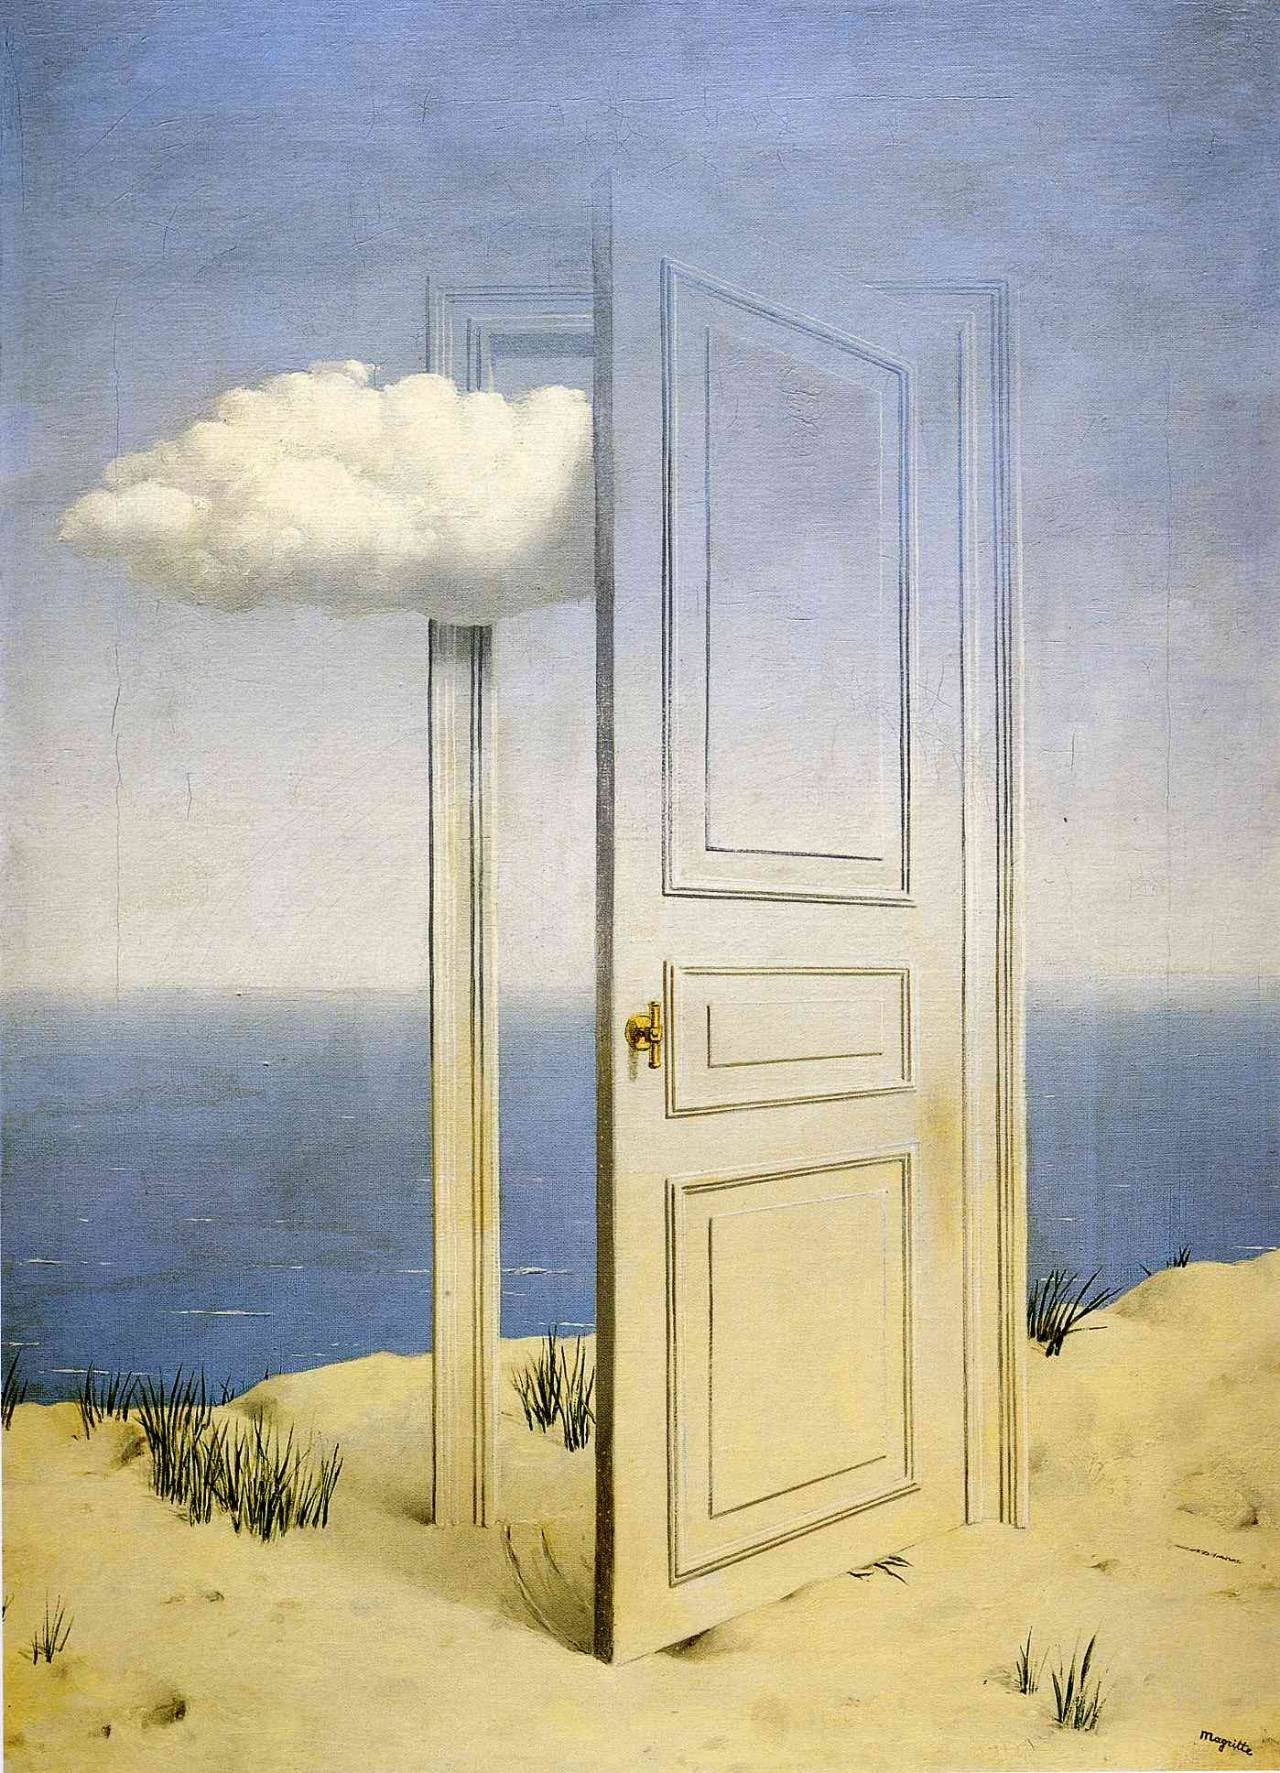 The victory, 1939 Rene Magritte